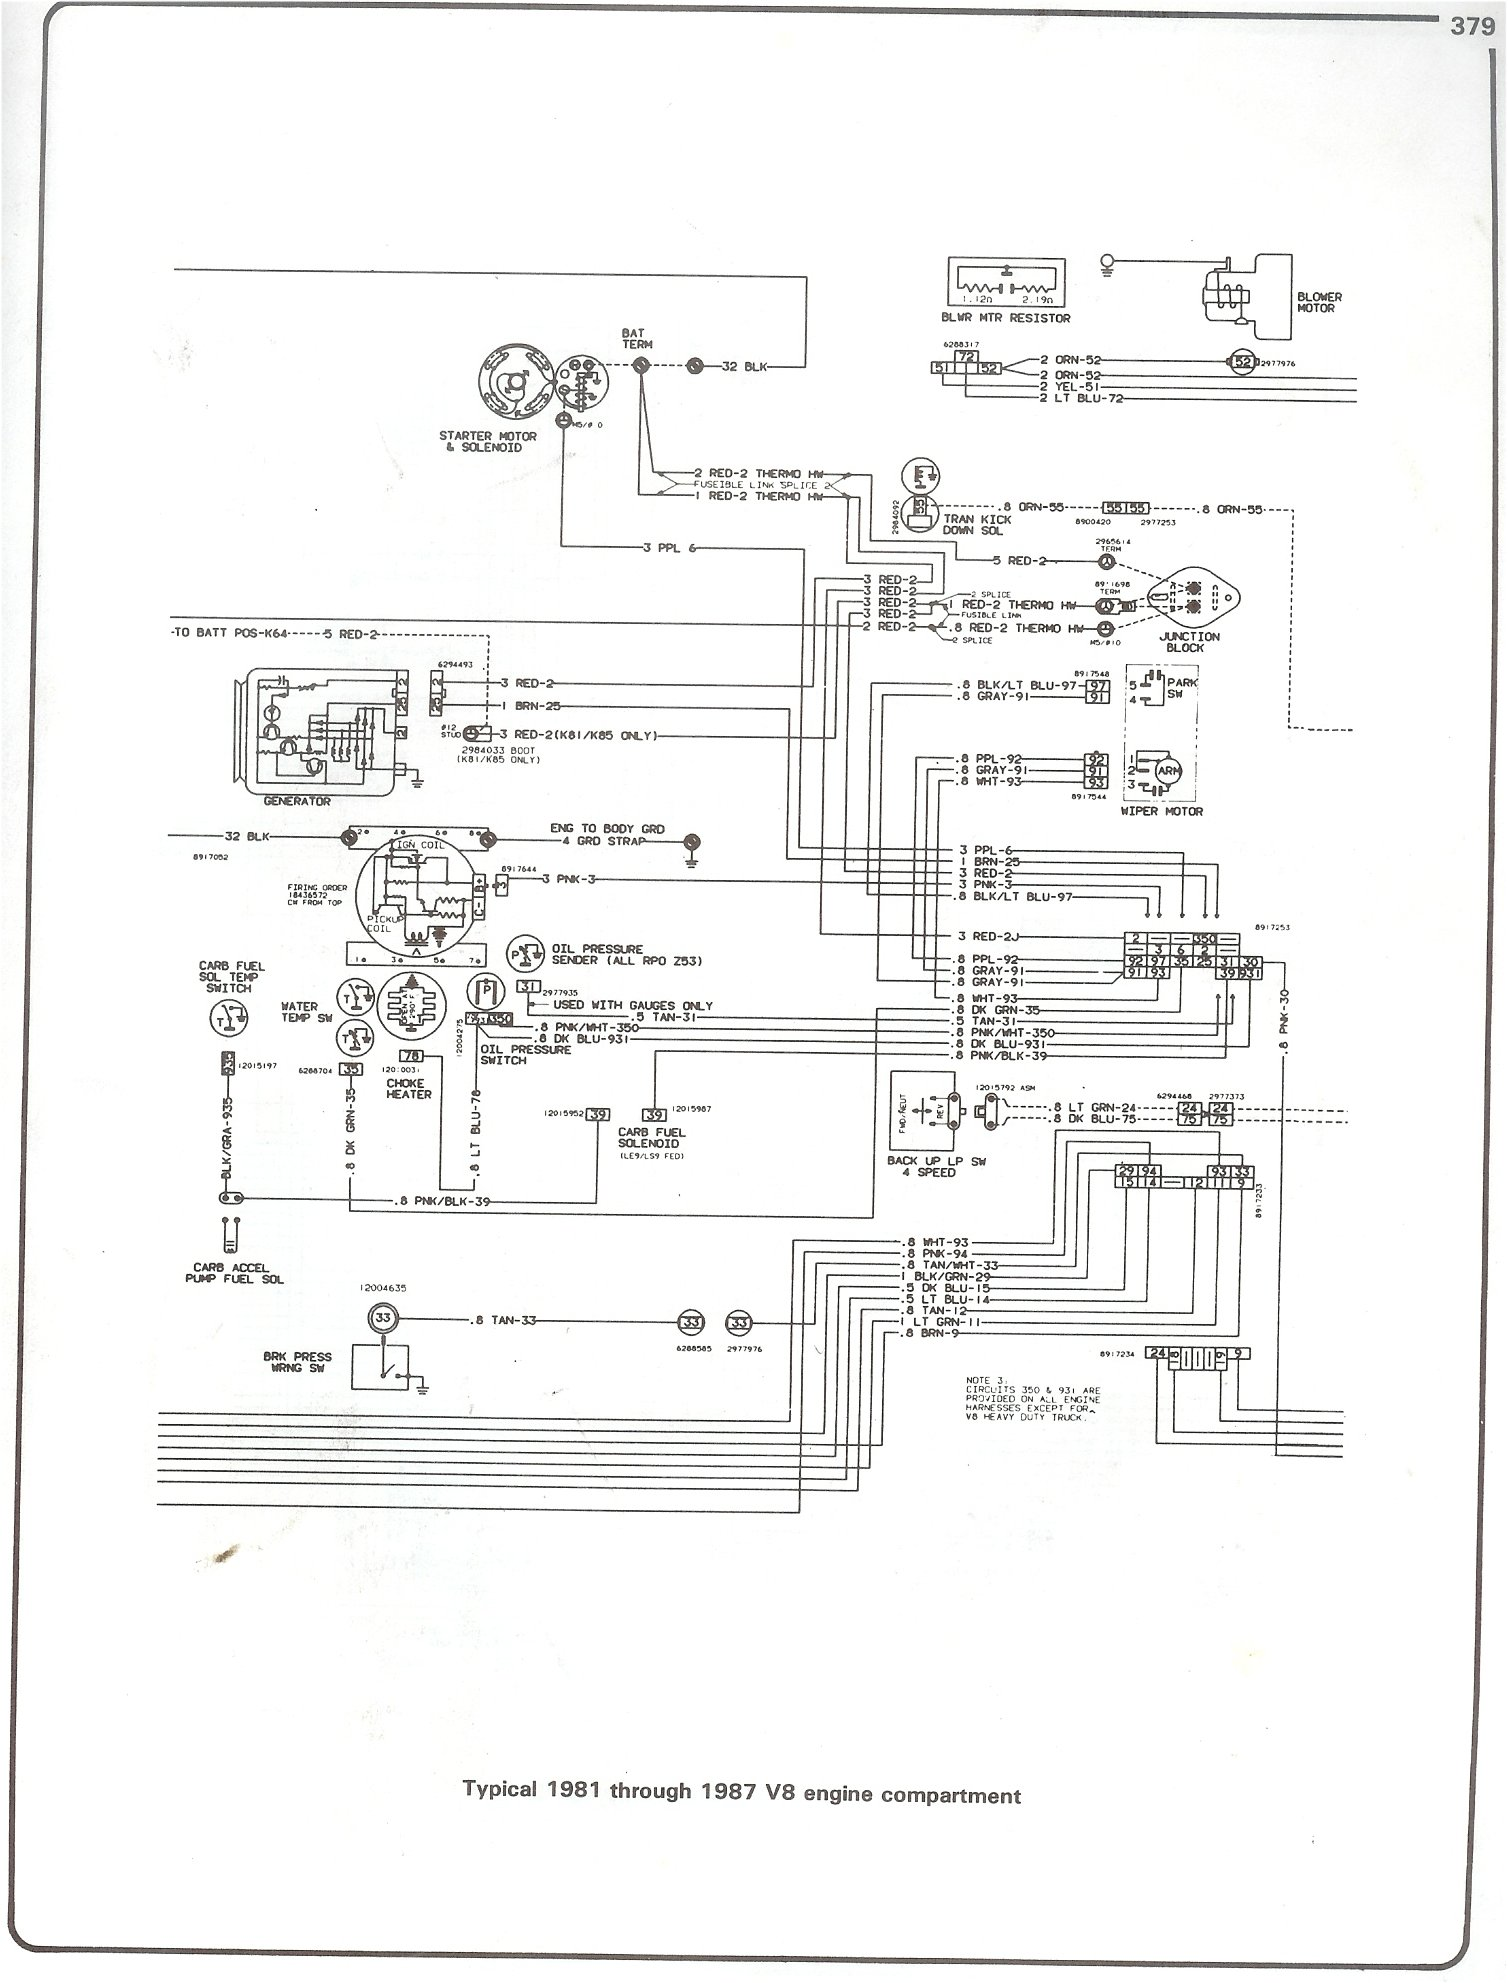 81 87_V8_engine complete 73 87 wiring diagrams 1986 chevy k10 wiring harness at fashall.co